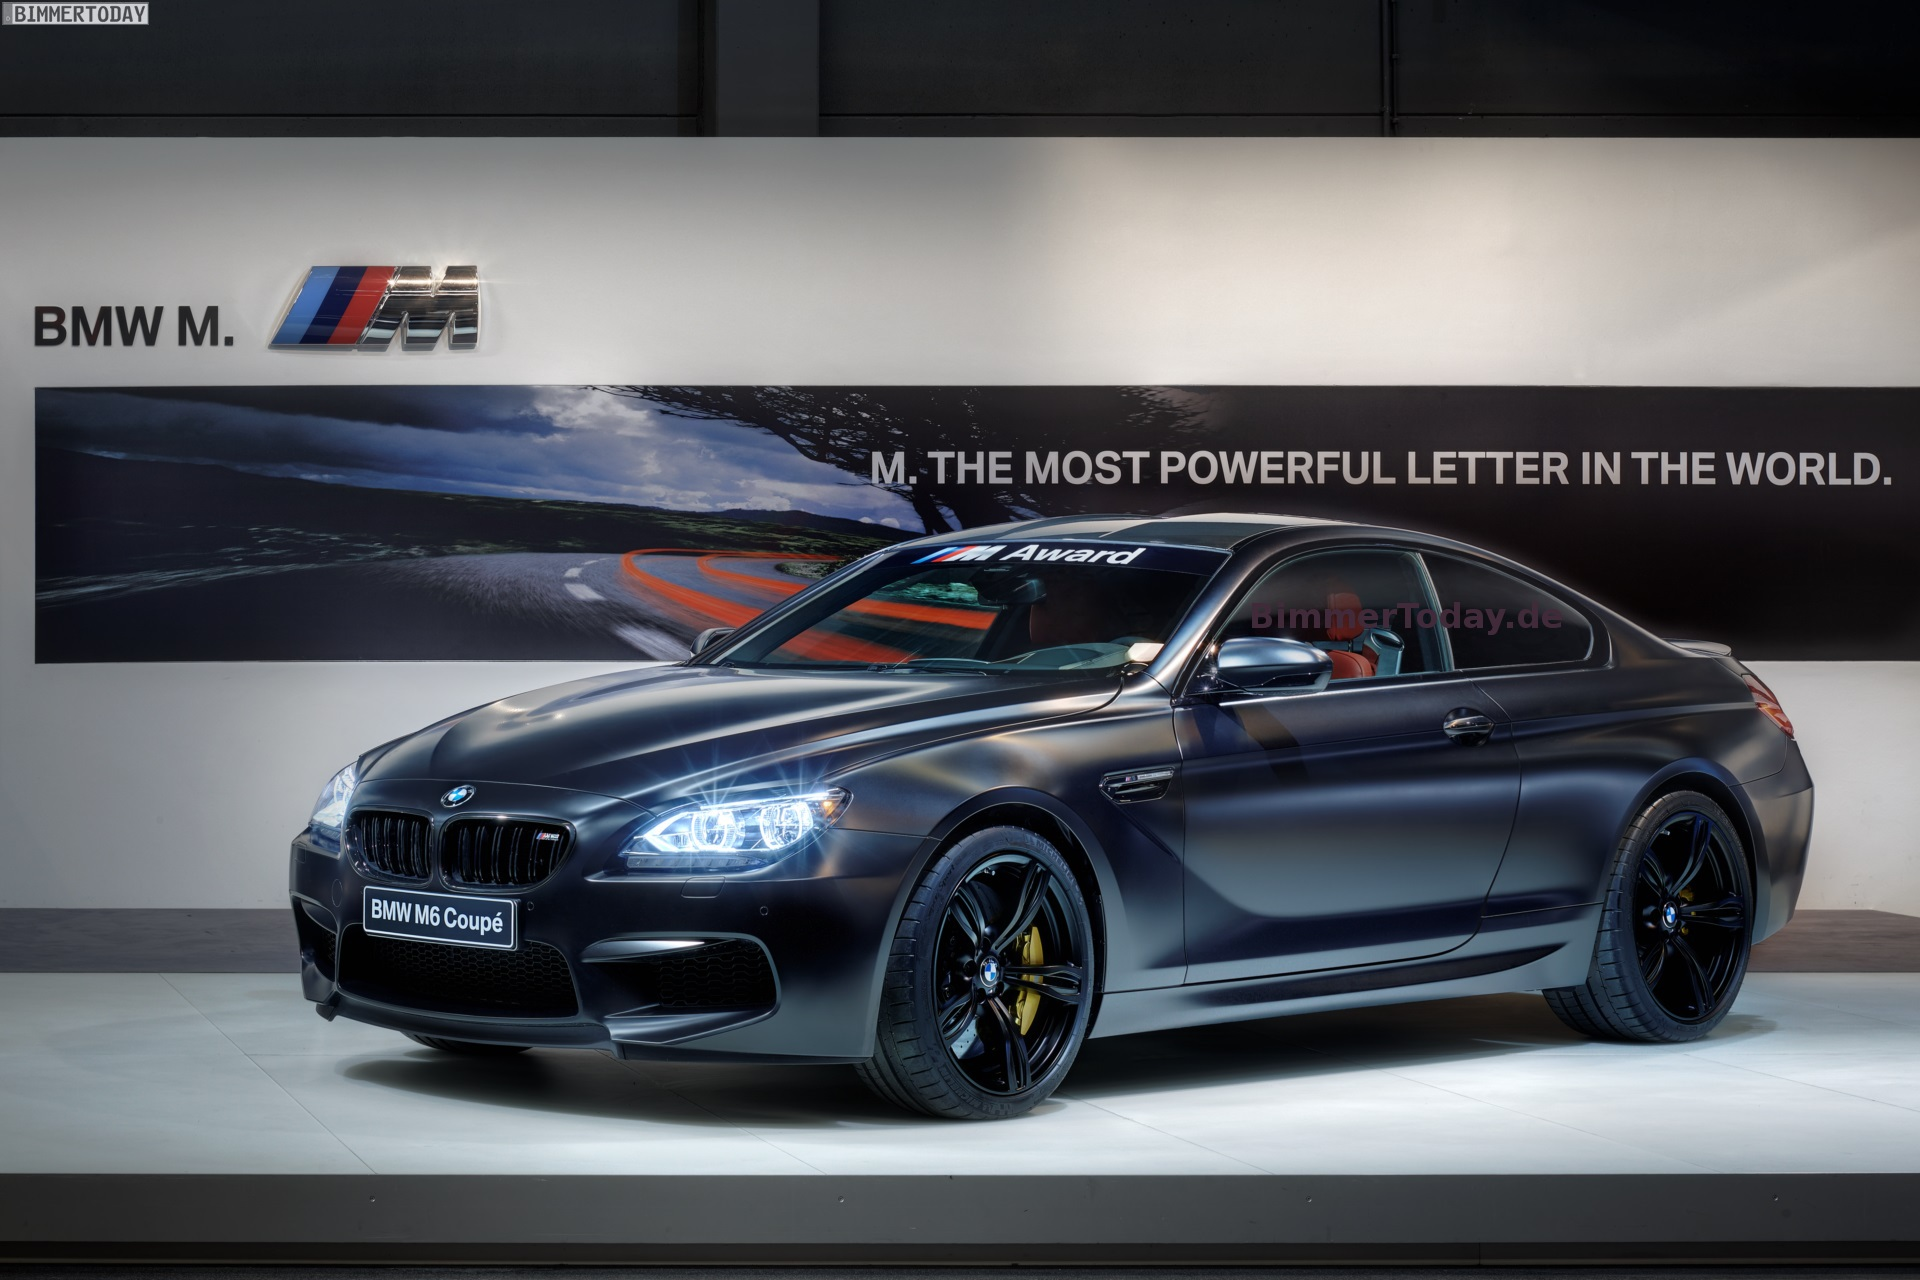 2013 Bmw M Award Bmw M6 Coupe Frozen Black For Best Motogp Qualifier